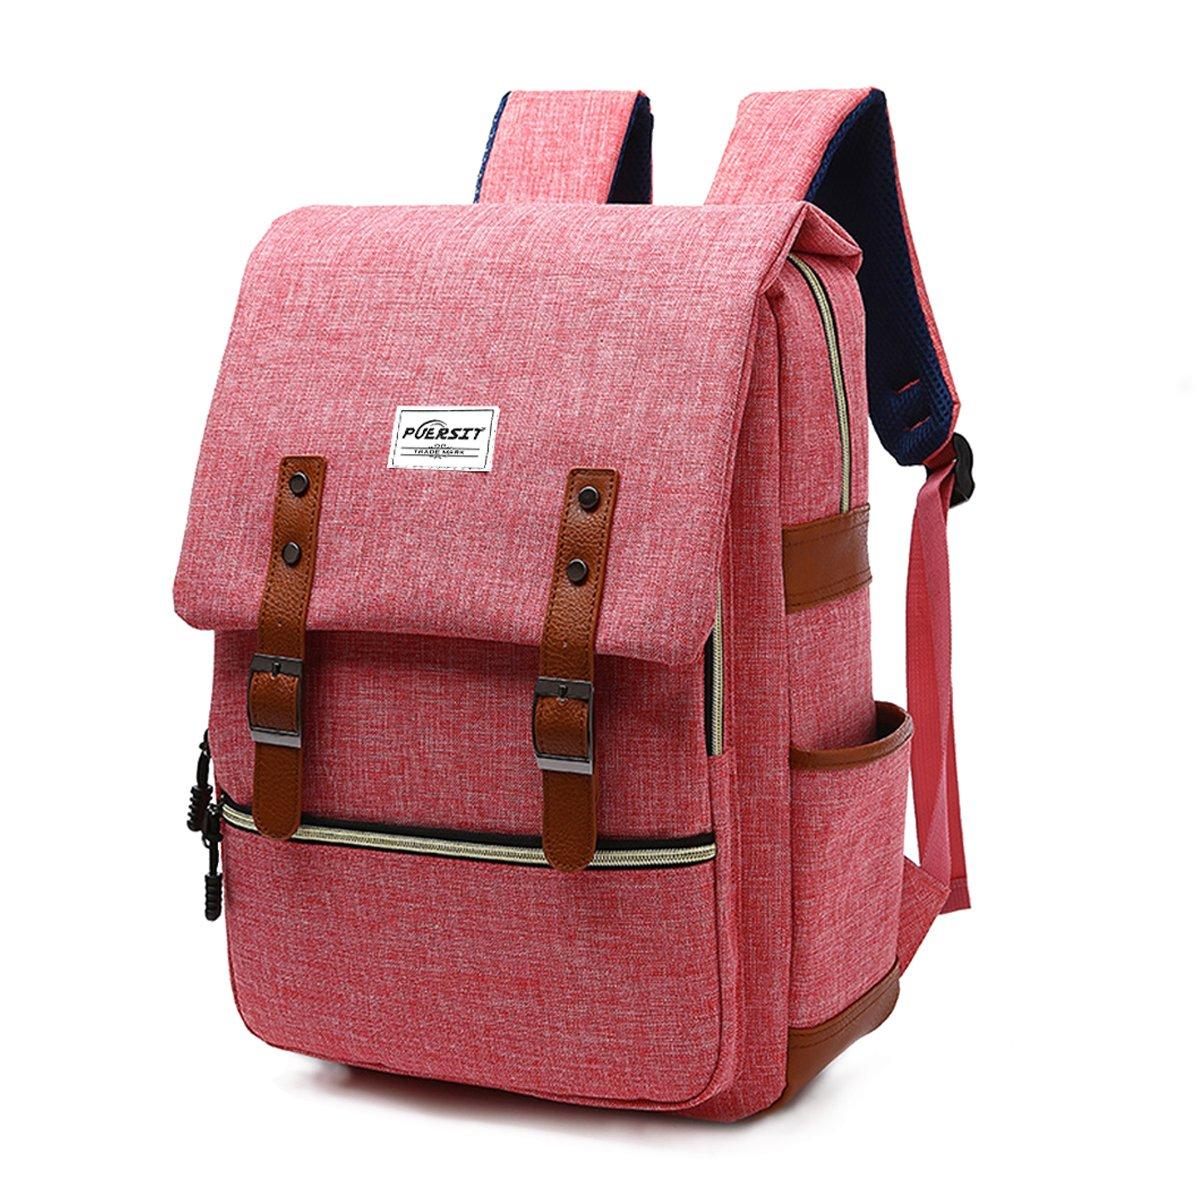 Vintage Laptop Backpack Canvas College Backpack School Bag Fits 15inch Laptop by Puersit